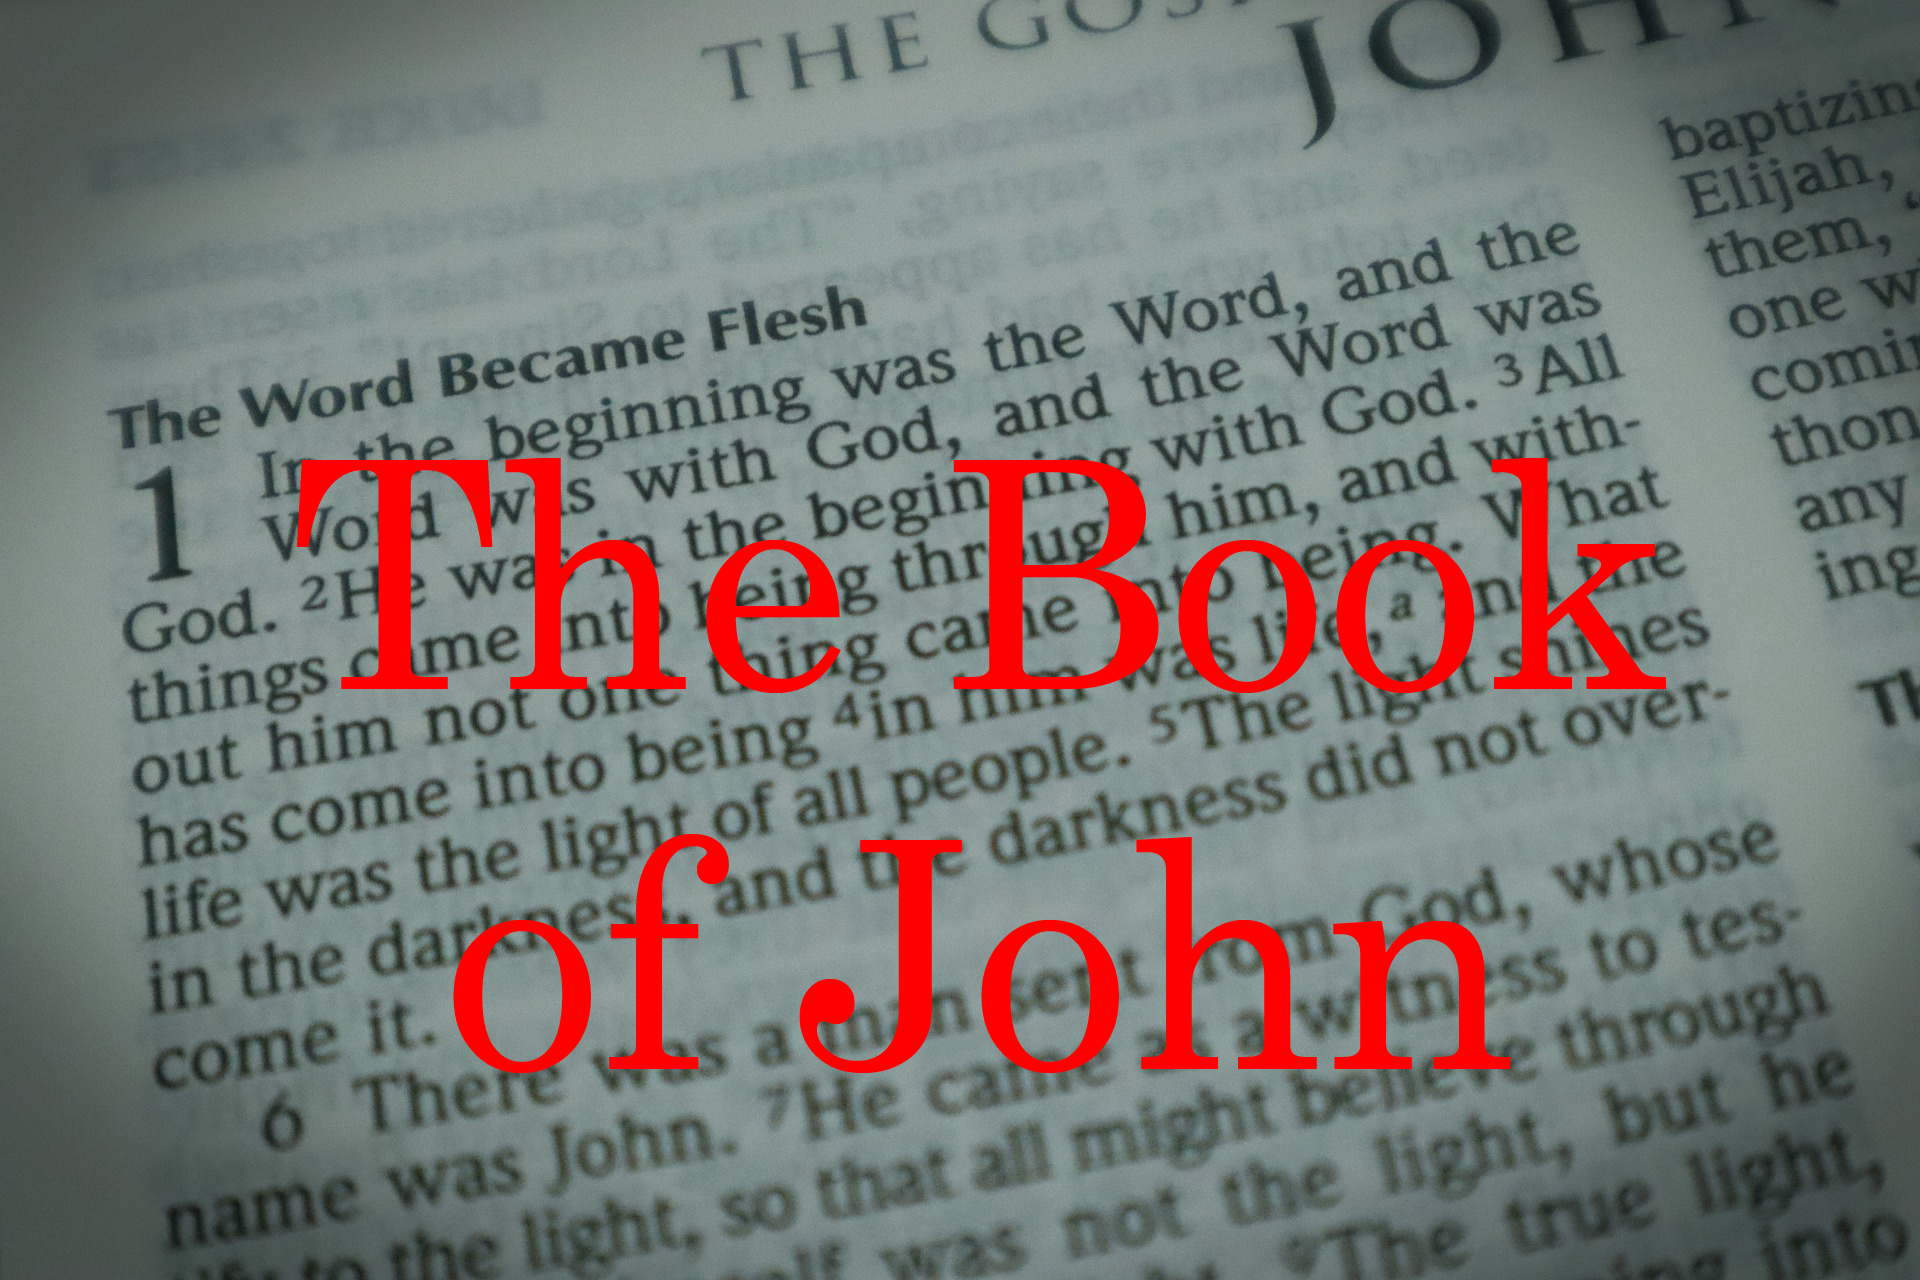 Permalink to:The Book of John